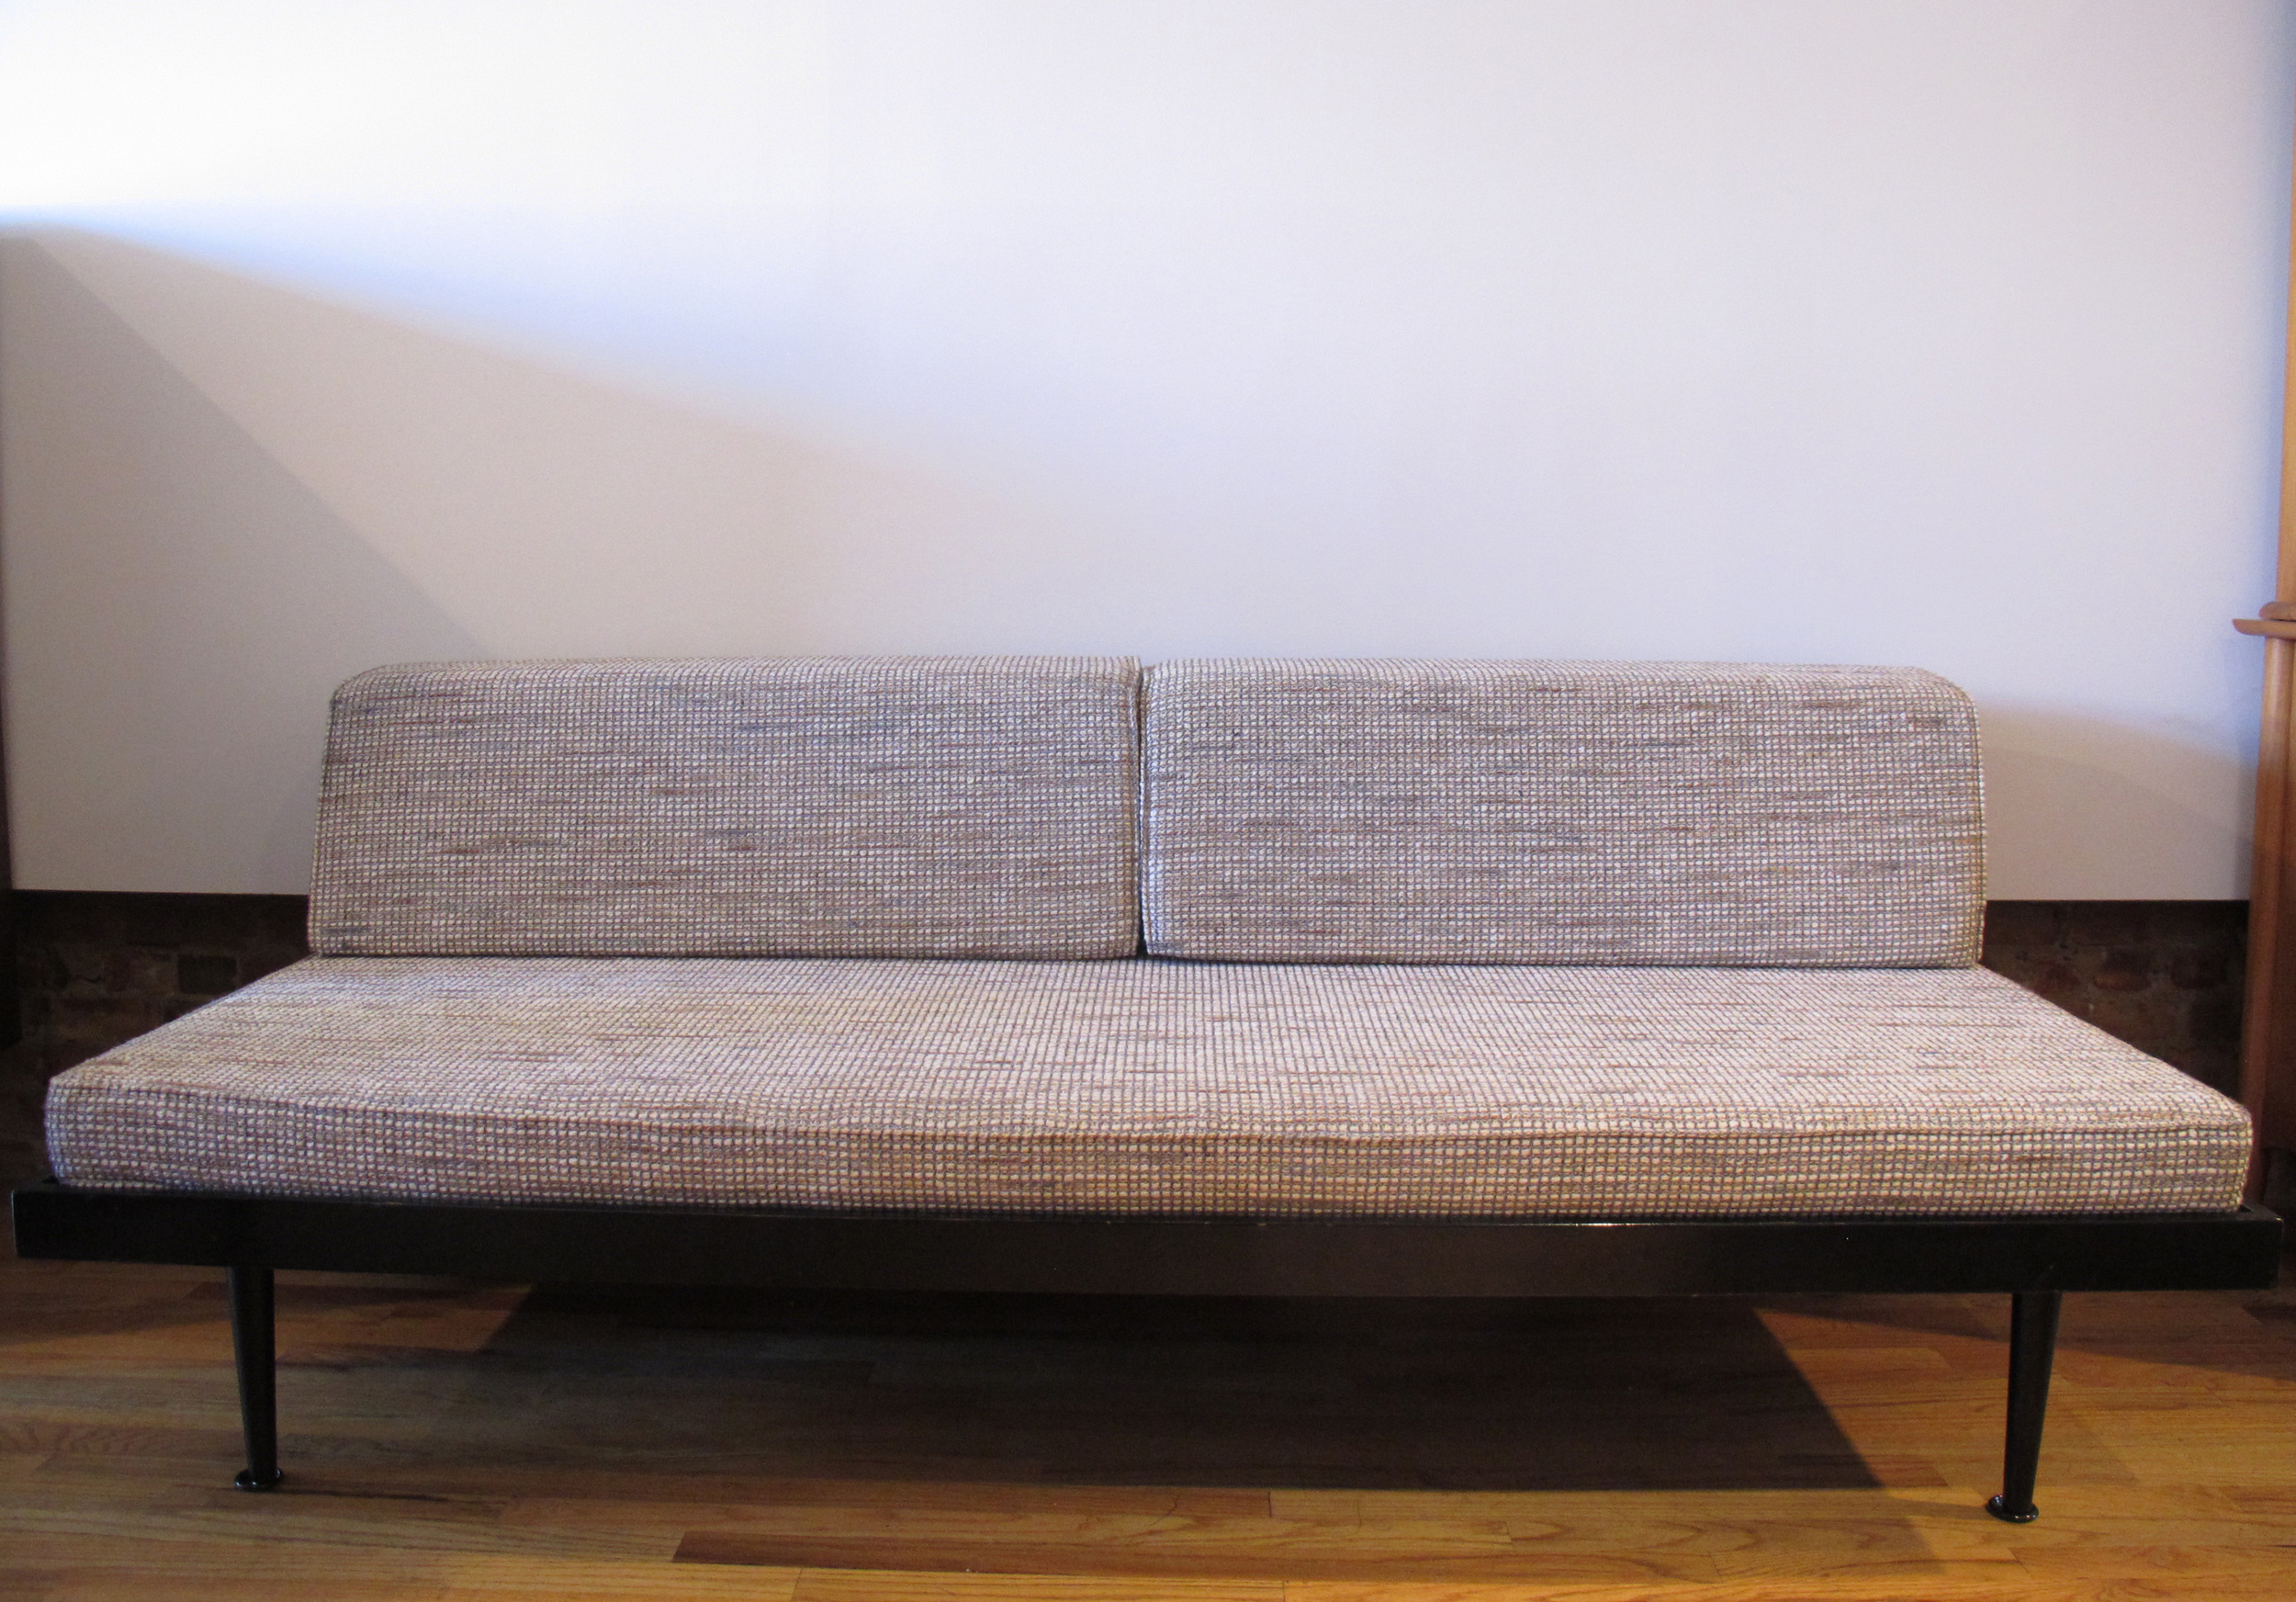 MID CENTURY MODERN 1960s DAYBED